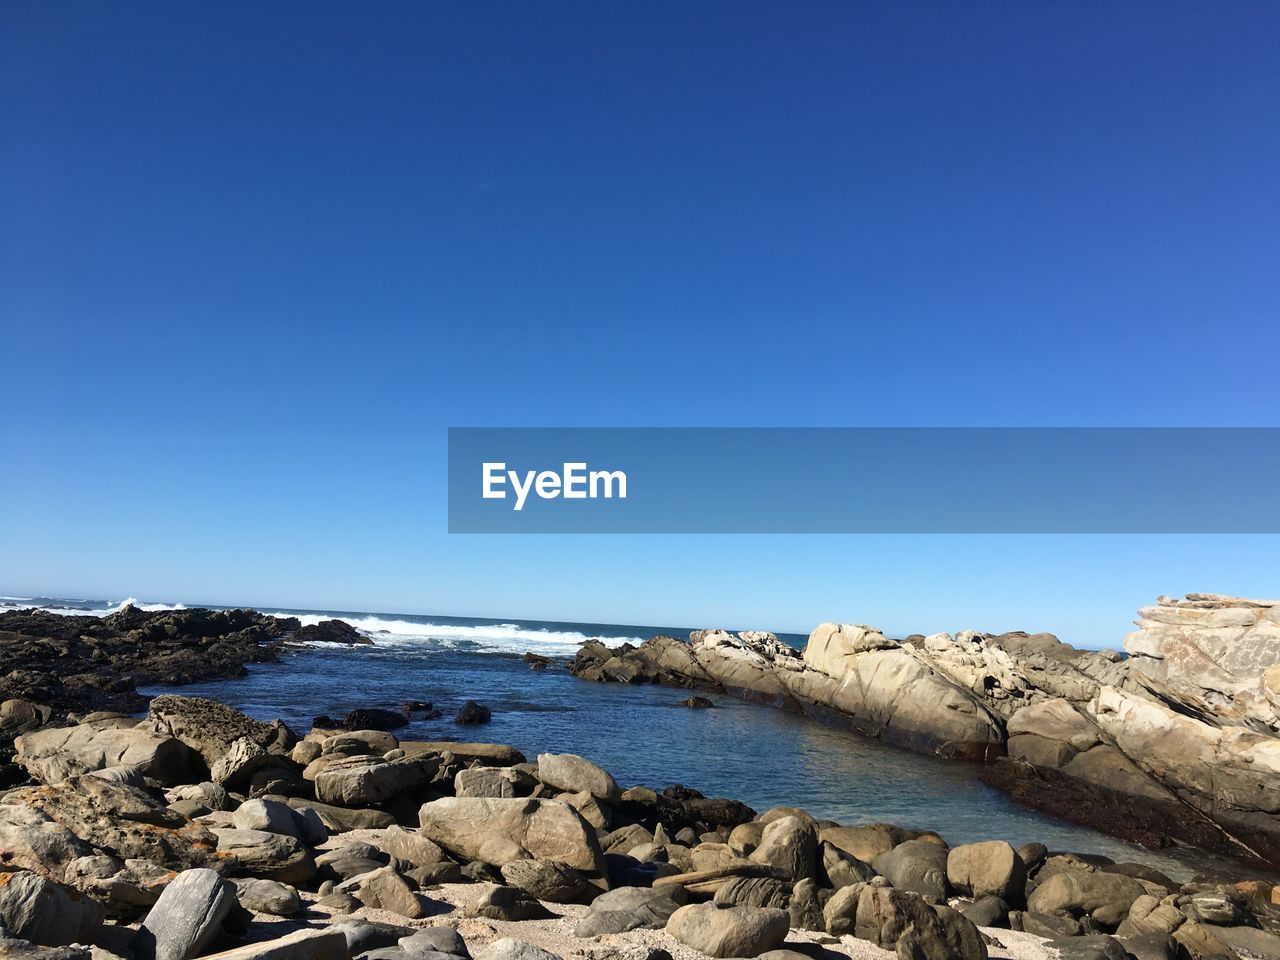 water, rock, sea, sky, blue, copy space, solid, rock - object, clear sky, beauty in nature, tranquility, nature, day, scenics - nature, tranquil scene, land, beach, no people, horizon, outdoors, rocky coastline